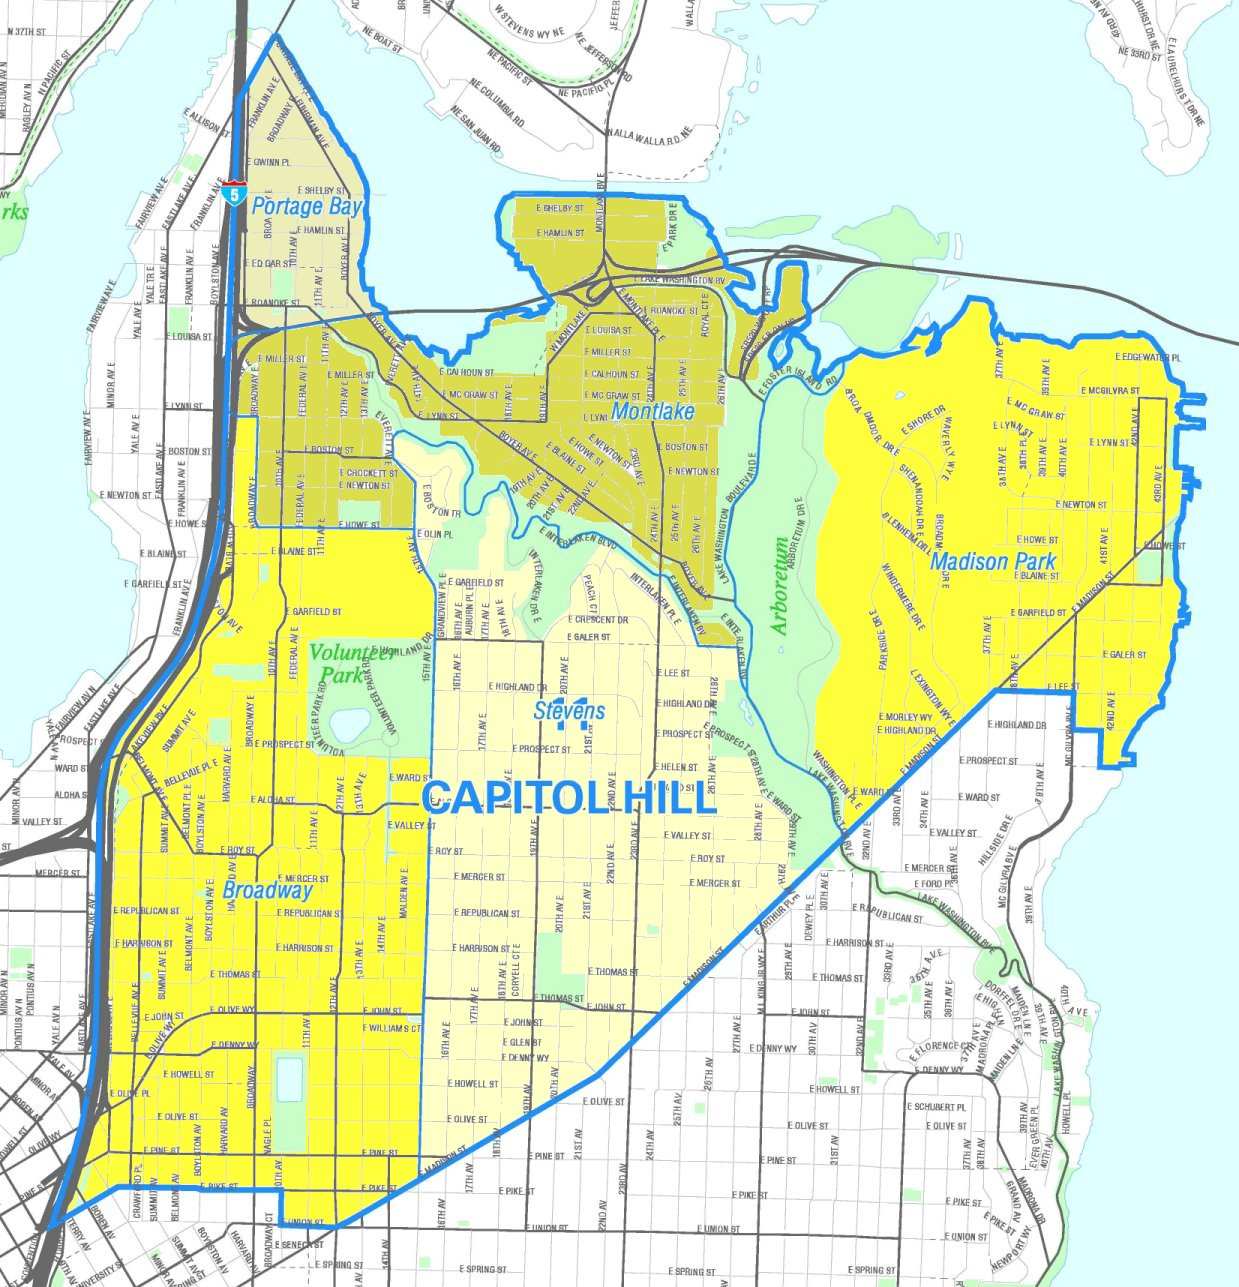 FileSeattle Capitol Hill Mapjpg Wikimedia Commons - Seattle map with neighborhoods